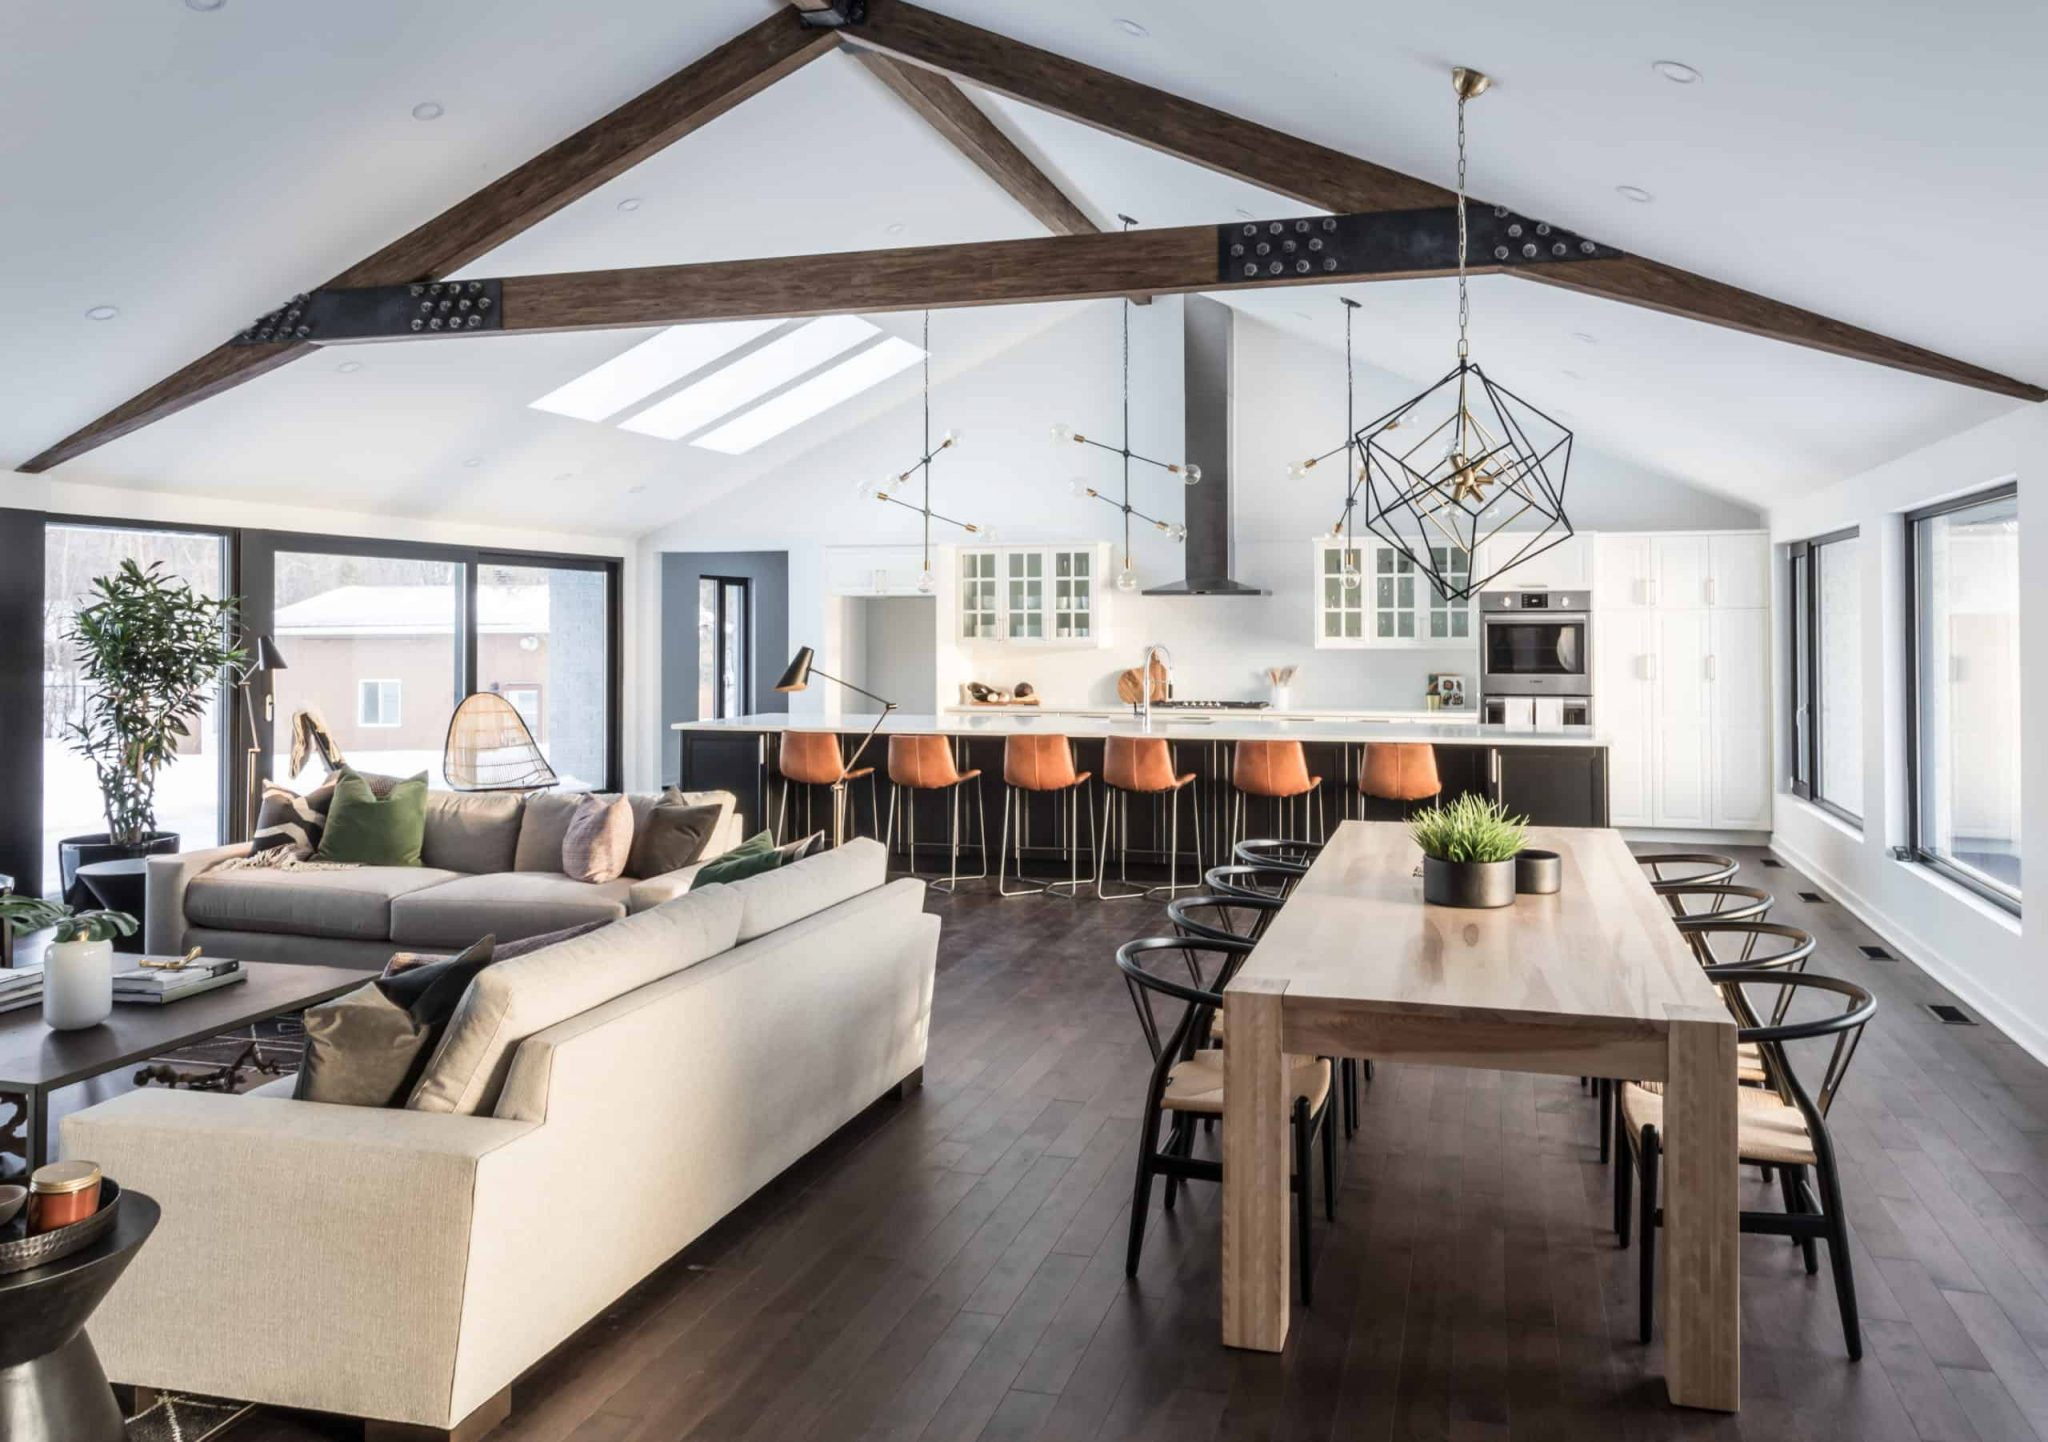 Massive living room, dining room and kitchen open concept